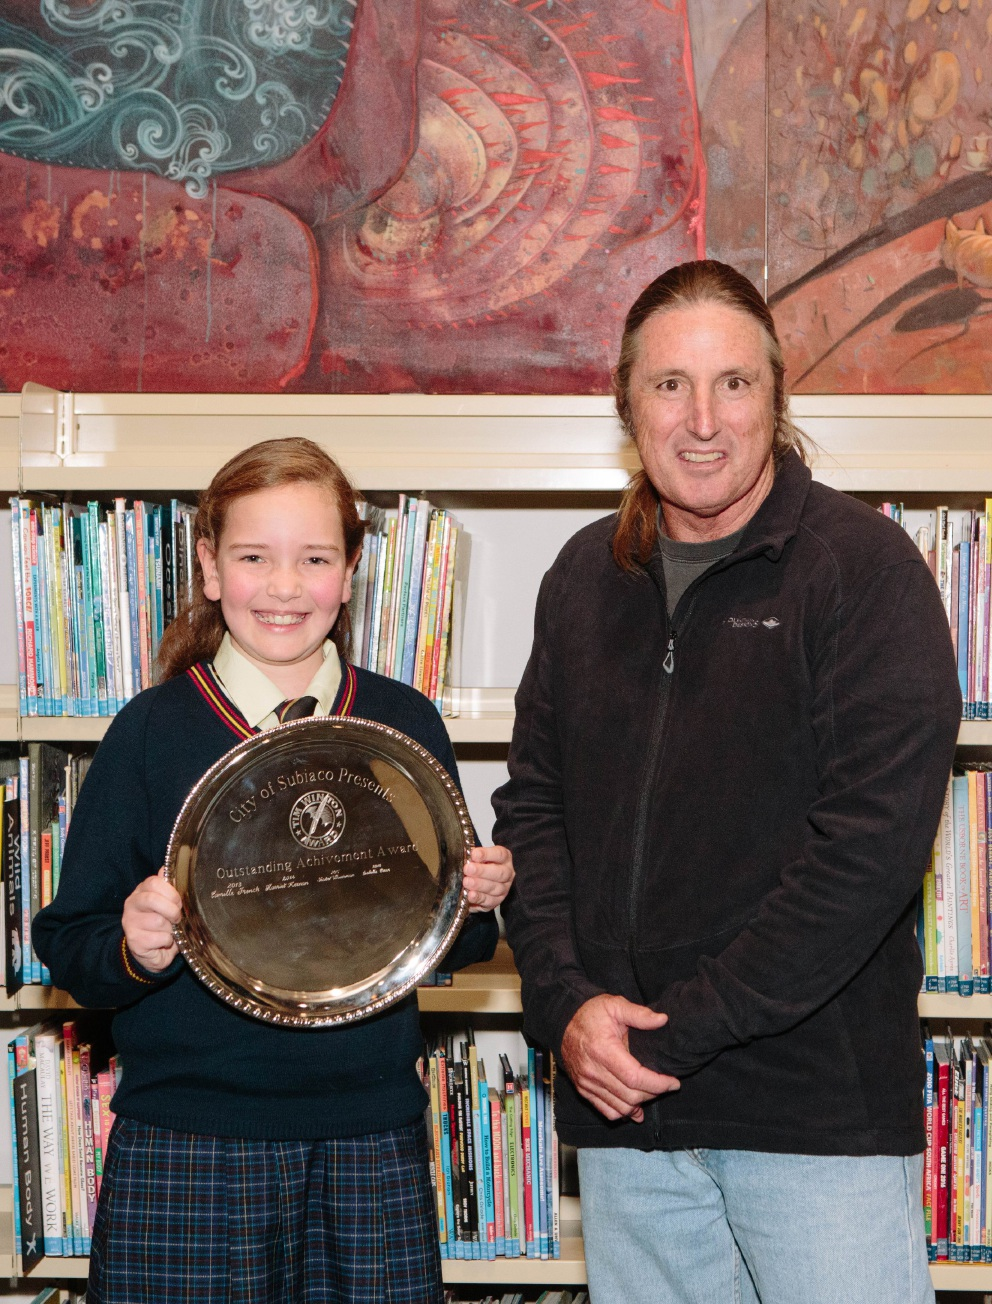 Tim Winton with the overall winner of the Tim Winton Award for Young Writers, Isabella Crean.